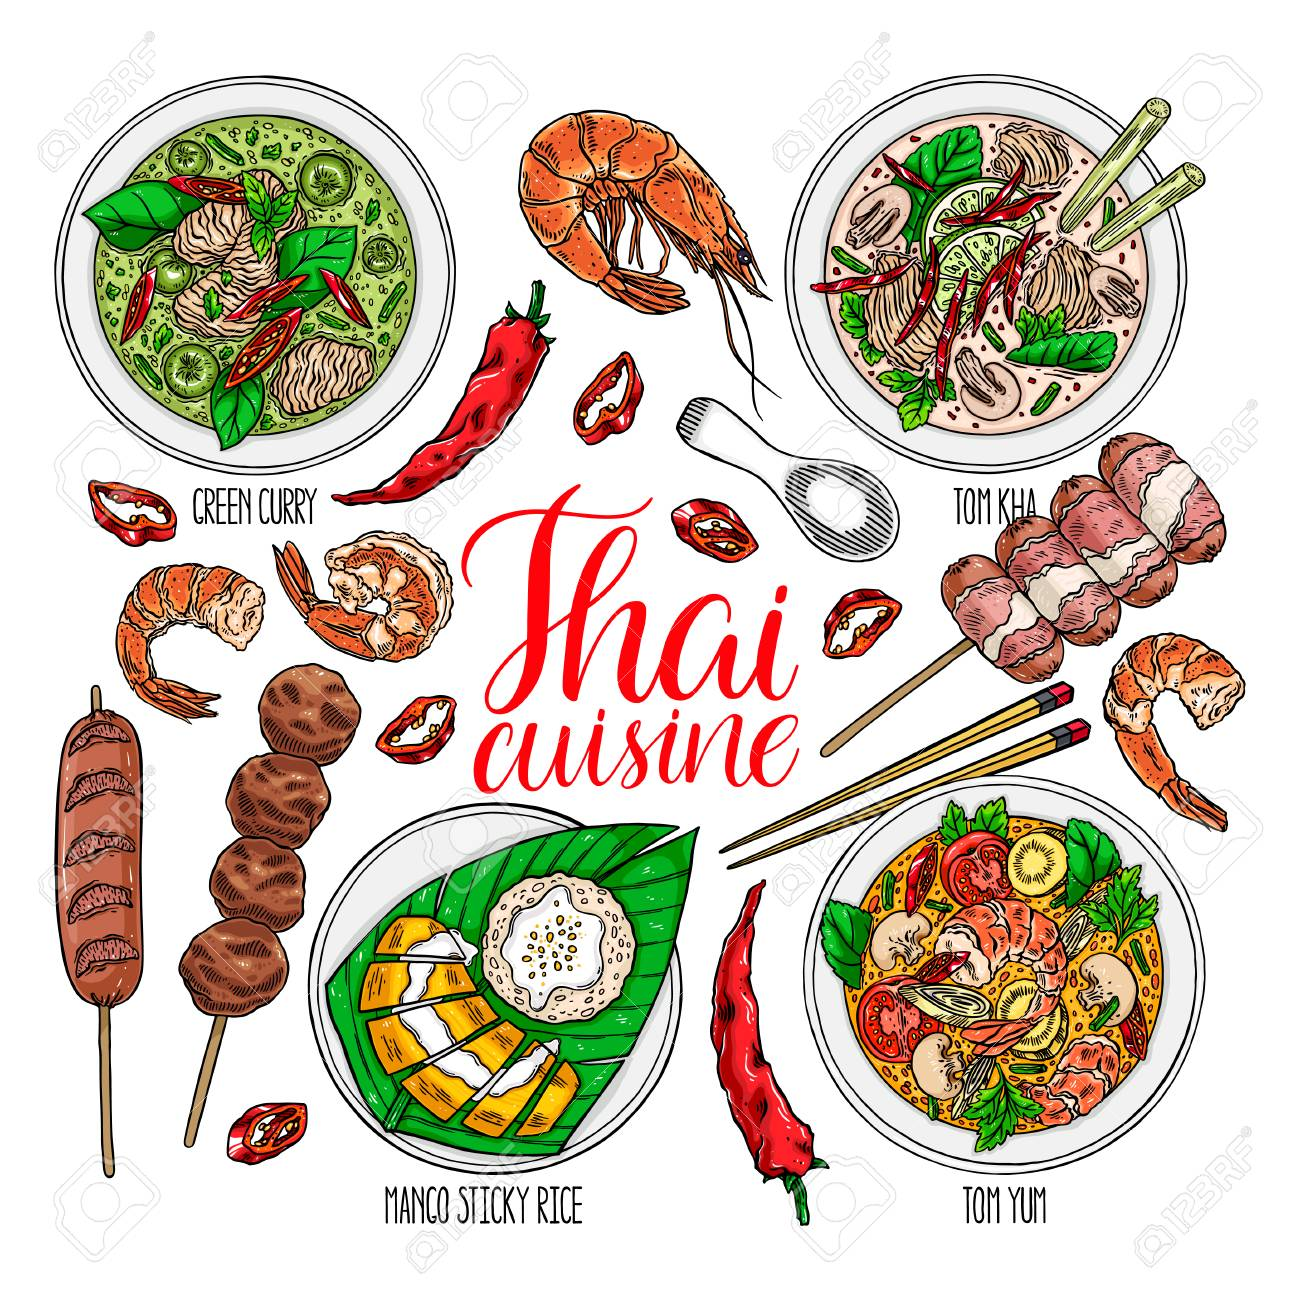 cute set of thai cuisine. Tom Yum kung, Green curry, Tom Kha, fruit sticky rice, shrimps and chili. hand drawn illustration - 93072716